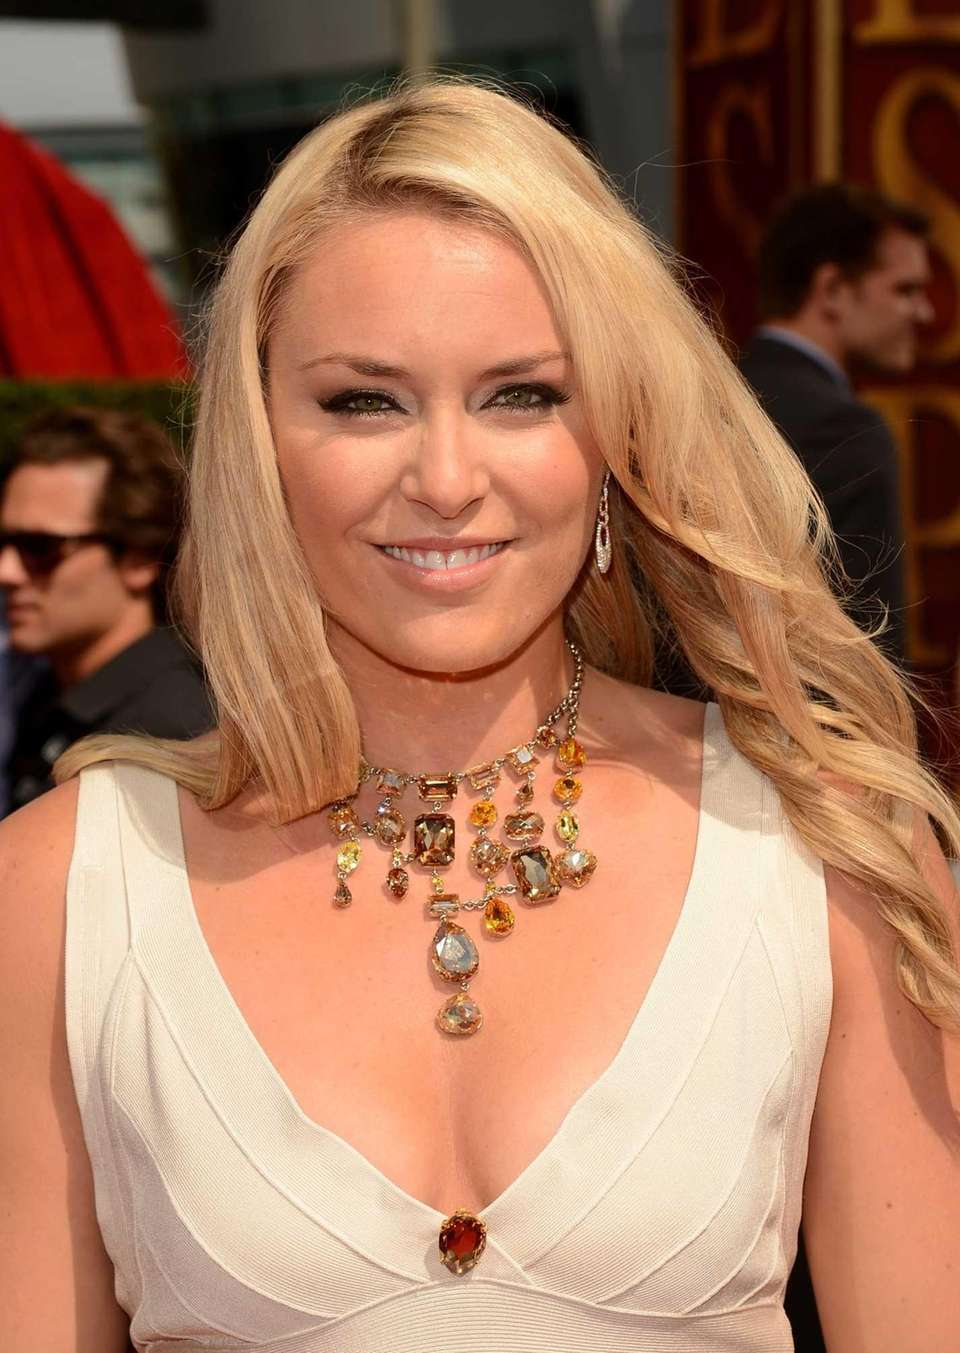 Olympic gold medalist Lindsey Vonn arrives at the